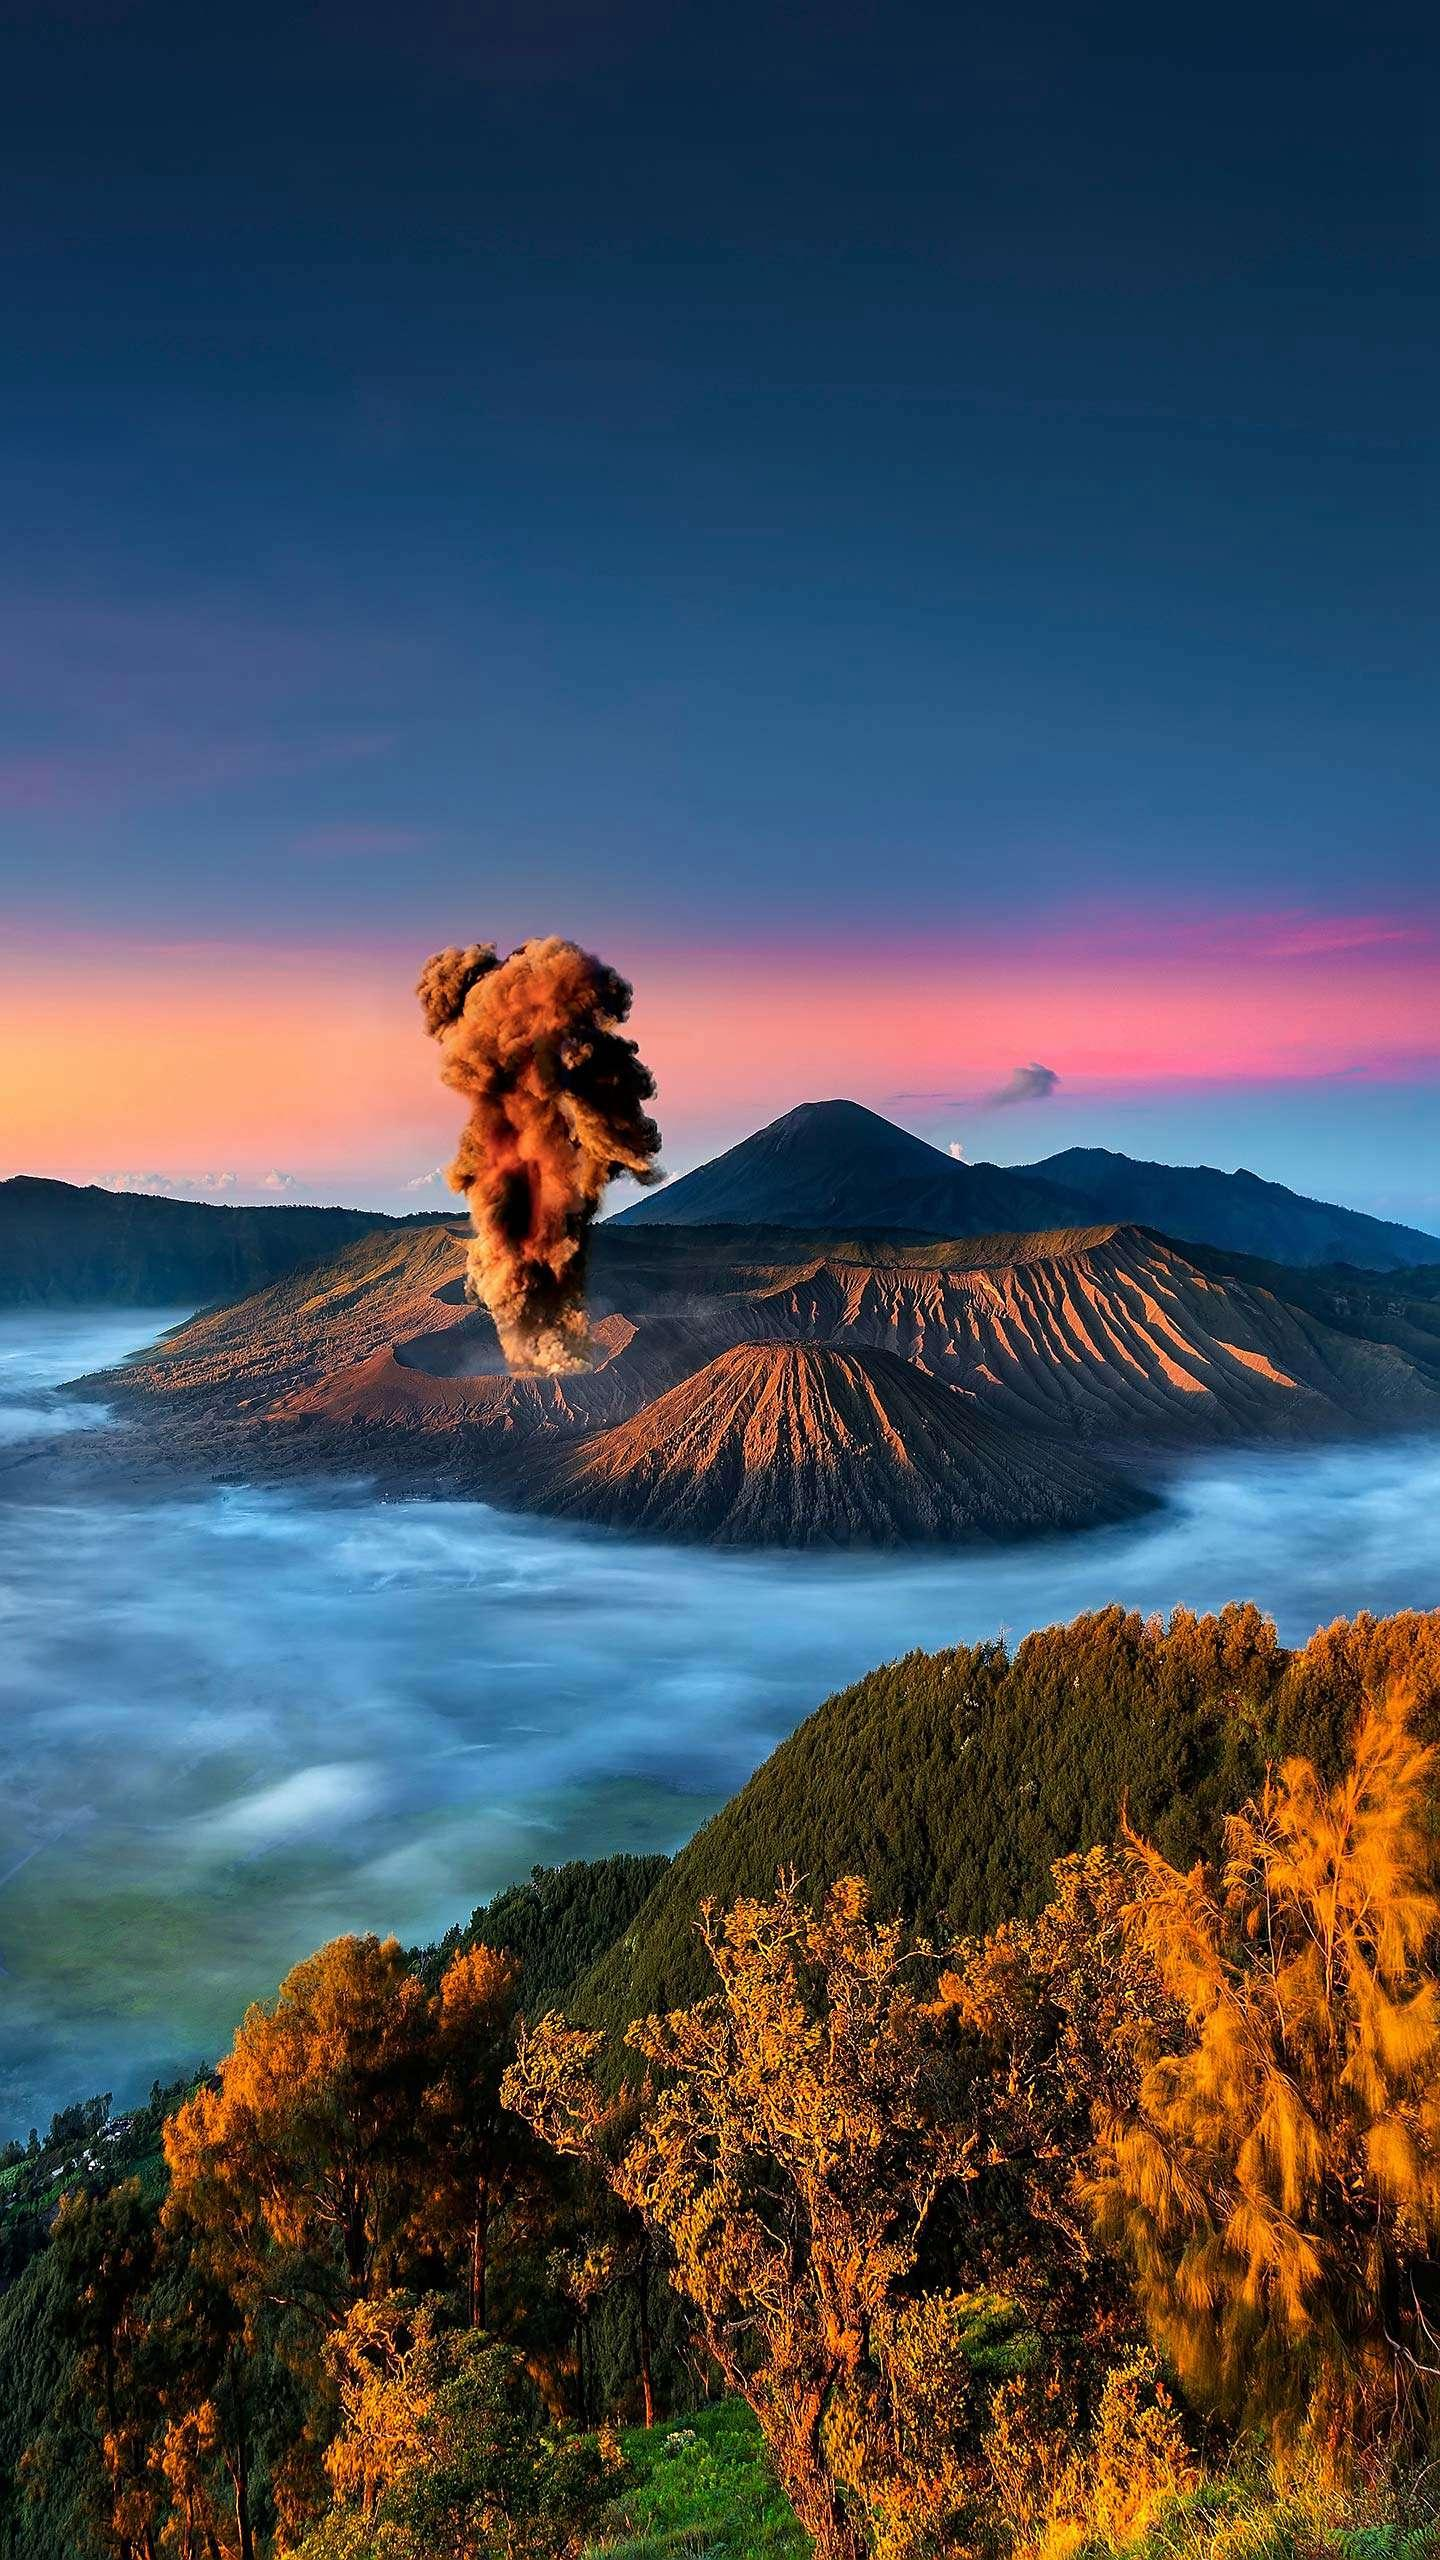 The wonders that Indonesia can't miss. From the towering and active volcano to the beautiful natural scenery, it meets almost everything the needs of outdoor travelers.